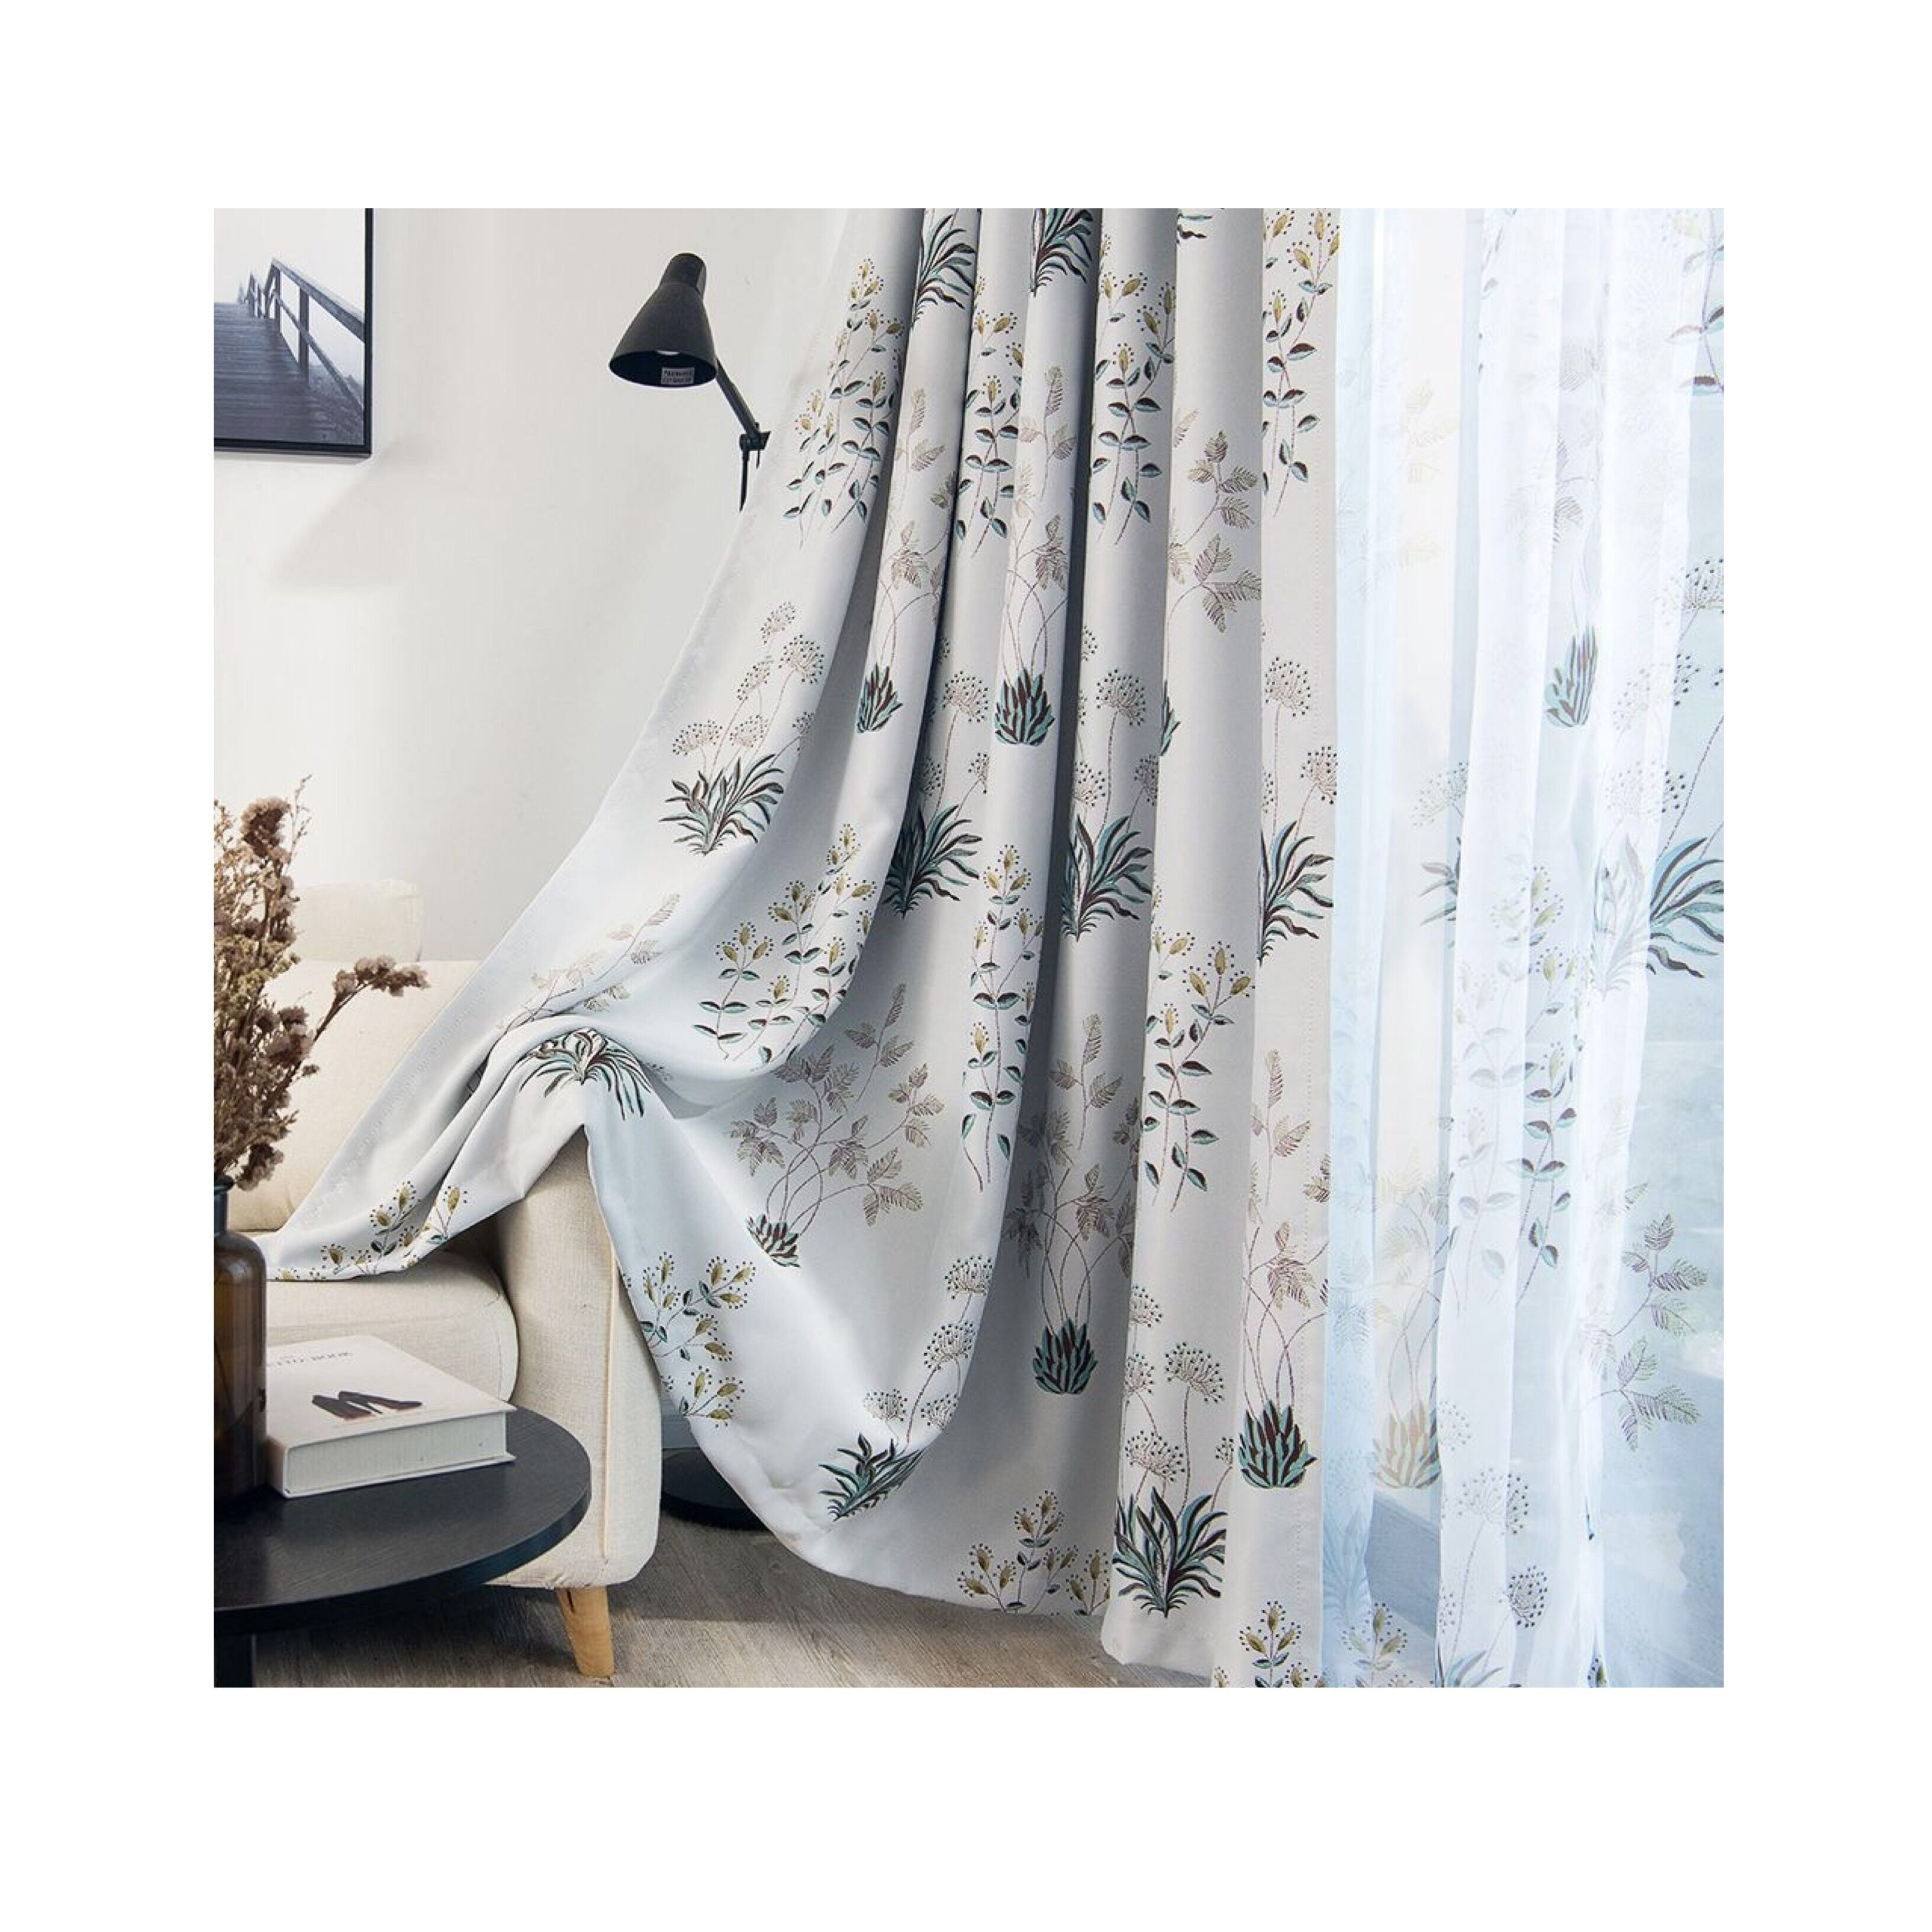 Cheap Price Curtains Fabric For Bedroom Fancy Curtains For Living Room Buy Curtains For Living Room Curtain Fabric Curtain For Bedroom Product On Alibaba Com